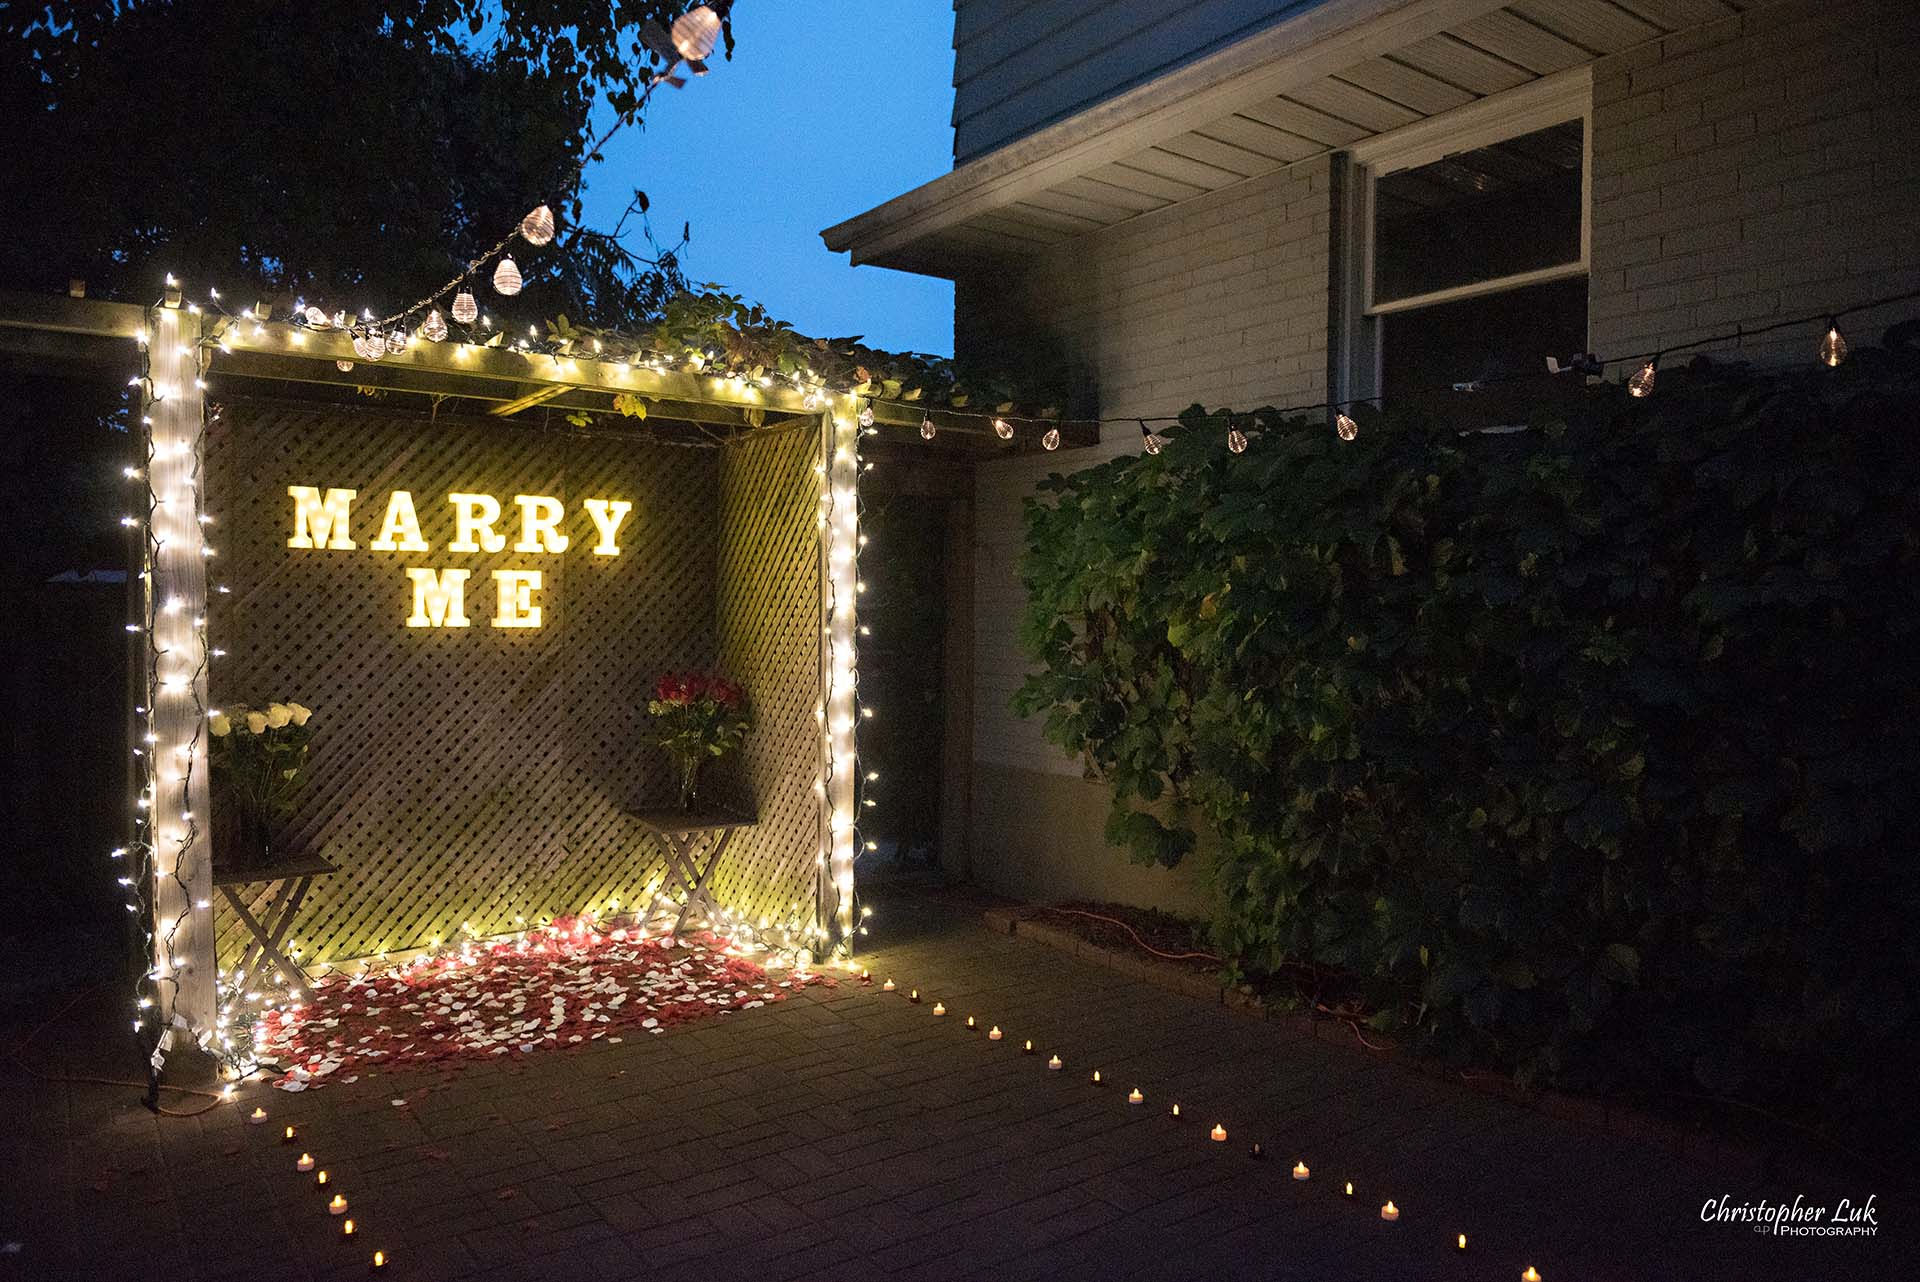 Christopher Luk Toronto Wedding Photographer - Backyard Surprise Proposal Engaged Engagement Gazebo Christmas Fairy Twinkle Lights Flower Petals Marry Me Wide Lights Setup Diagonal